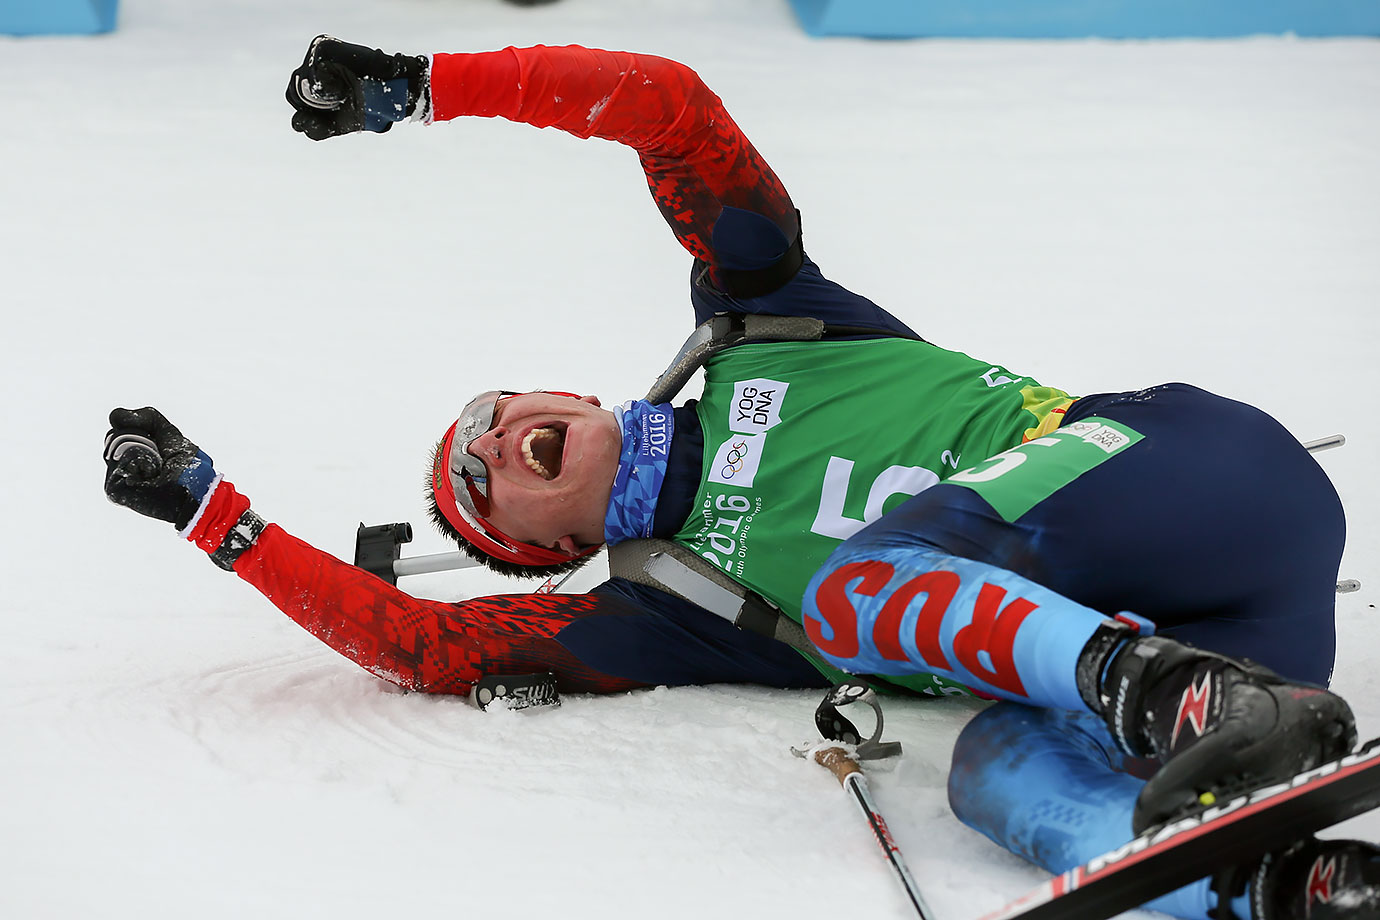 Egor Tutmin (RUS) celebrates after crossing the line to win a Bronze Medal in the Single Mixed Biathlon Relay at the Birkebeineren Biathlon Stadium on Feb. 17, 2016 during the Winter Youth Olympic Games in Lillehammer, Norway.